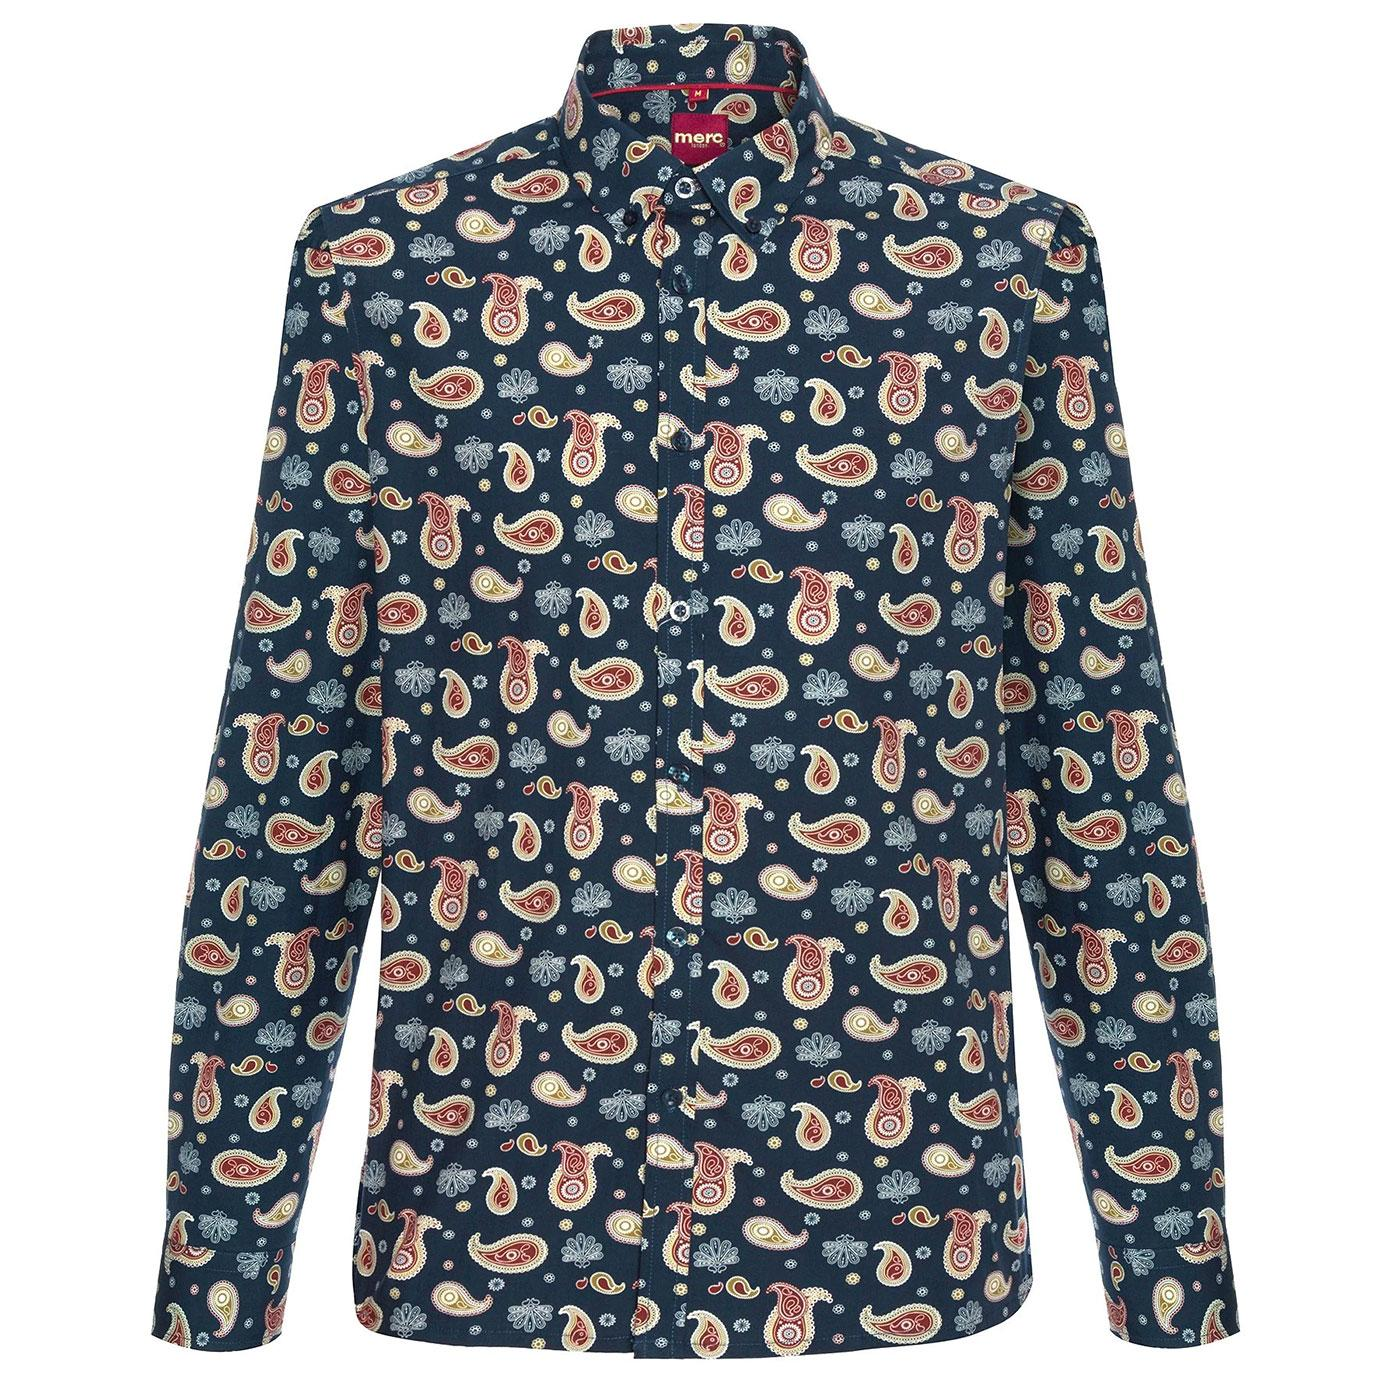 Keane MERC Retro Mod 60s Paisley Shirt in Navy